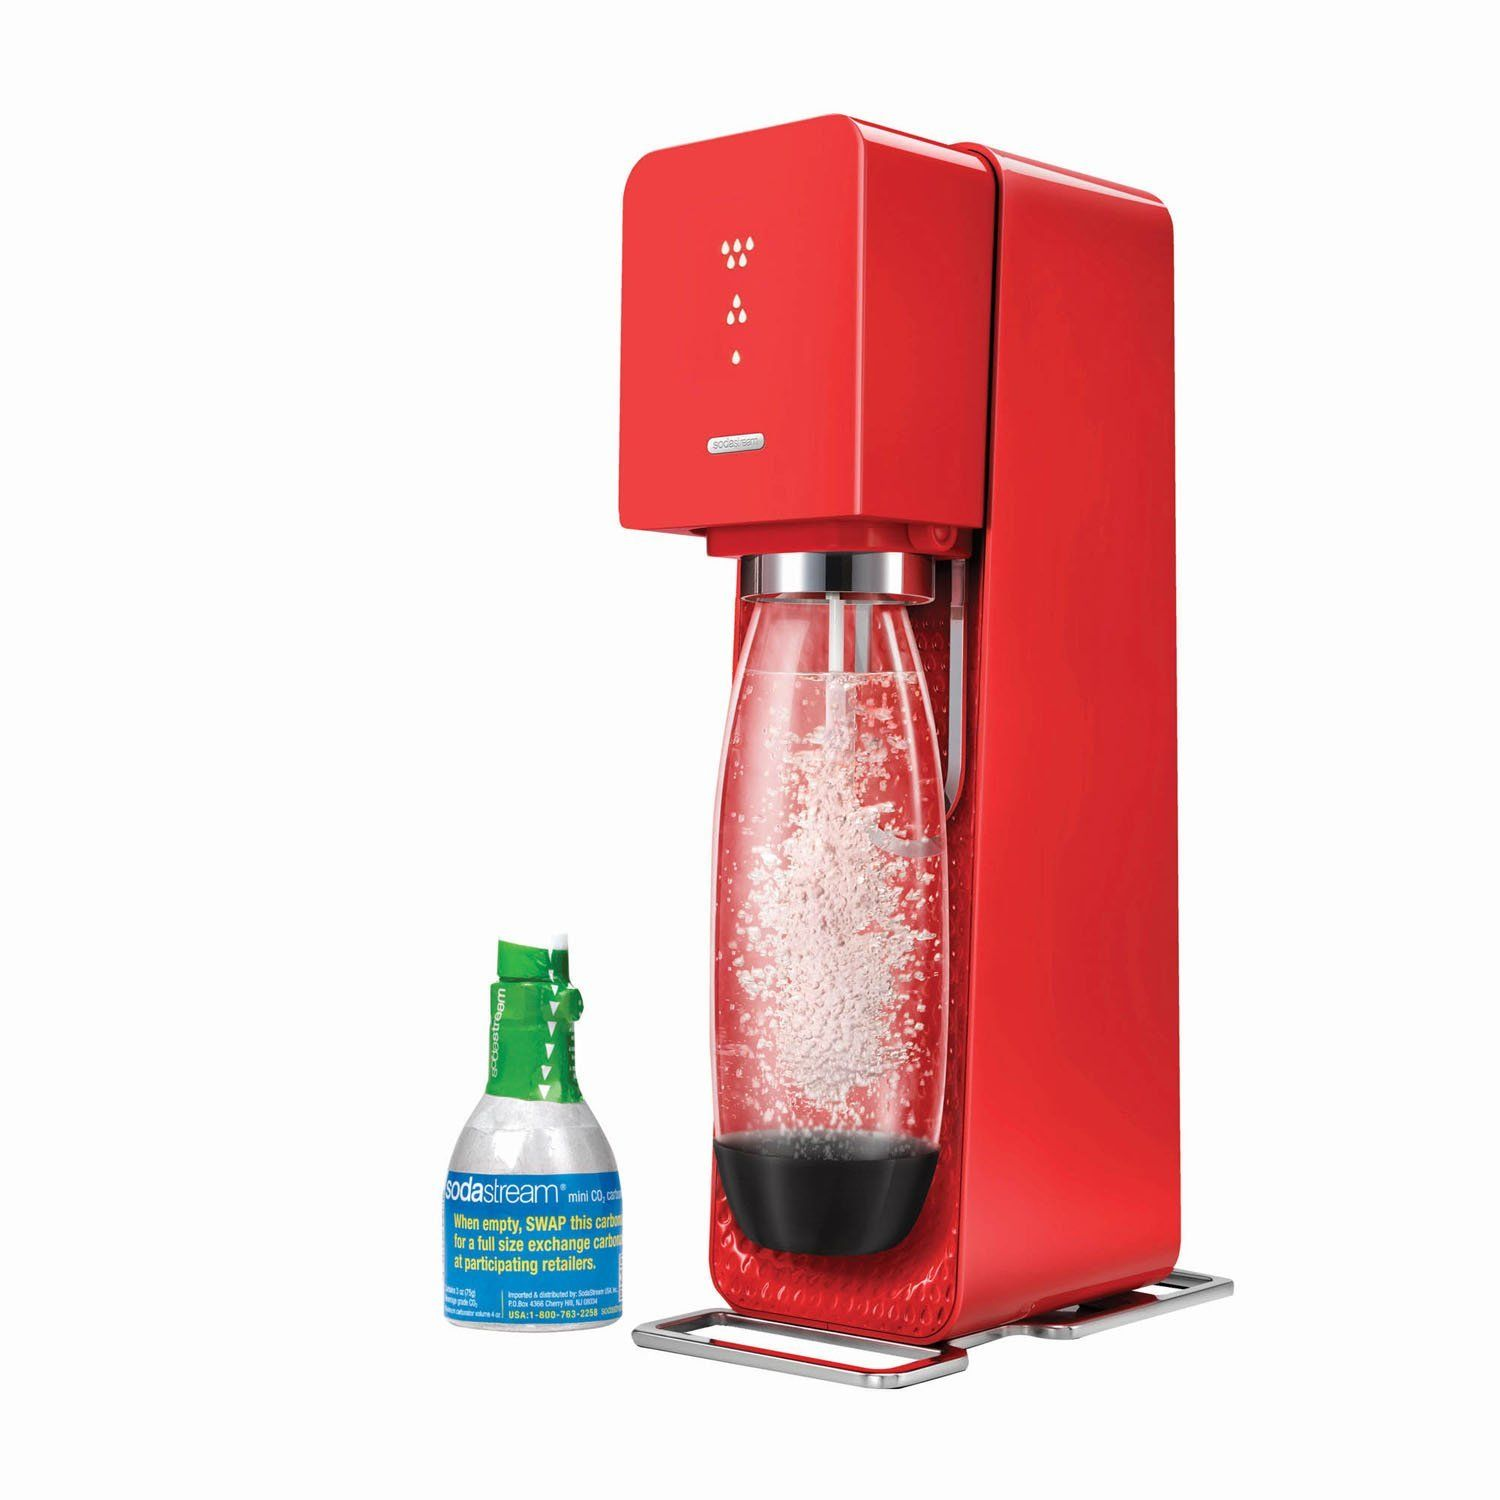 Sodastream Source Home Soda Maker Starter Kit Red This Is An Amazon Affiliate Link Check Out This Great Product Soda Makers Soda Stream Best Soda